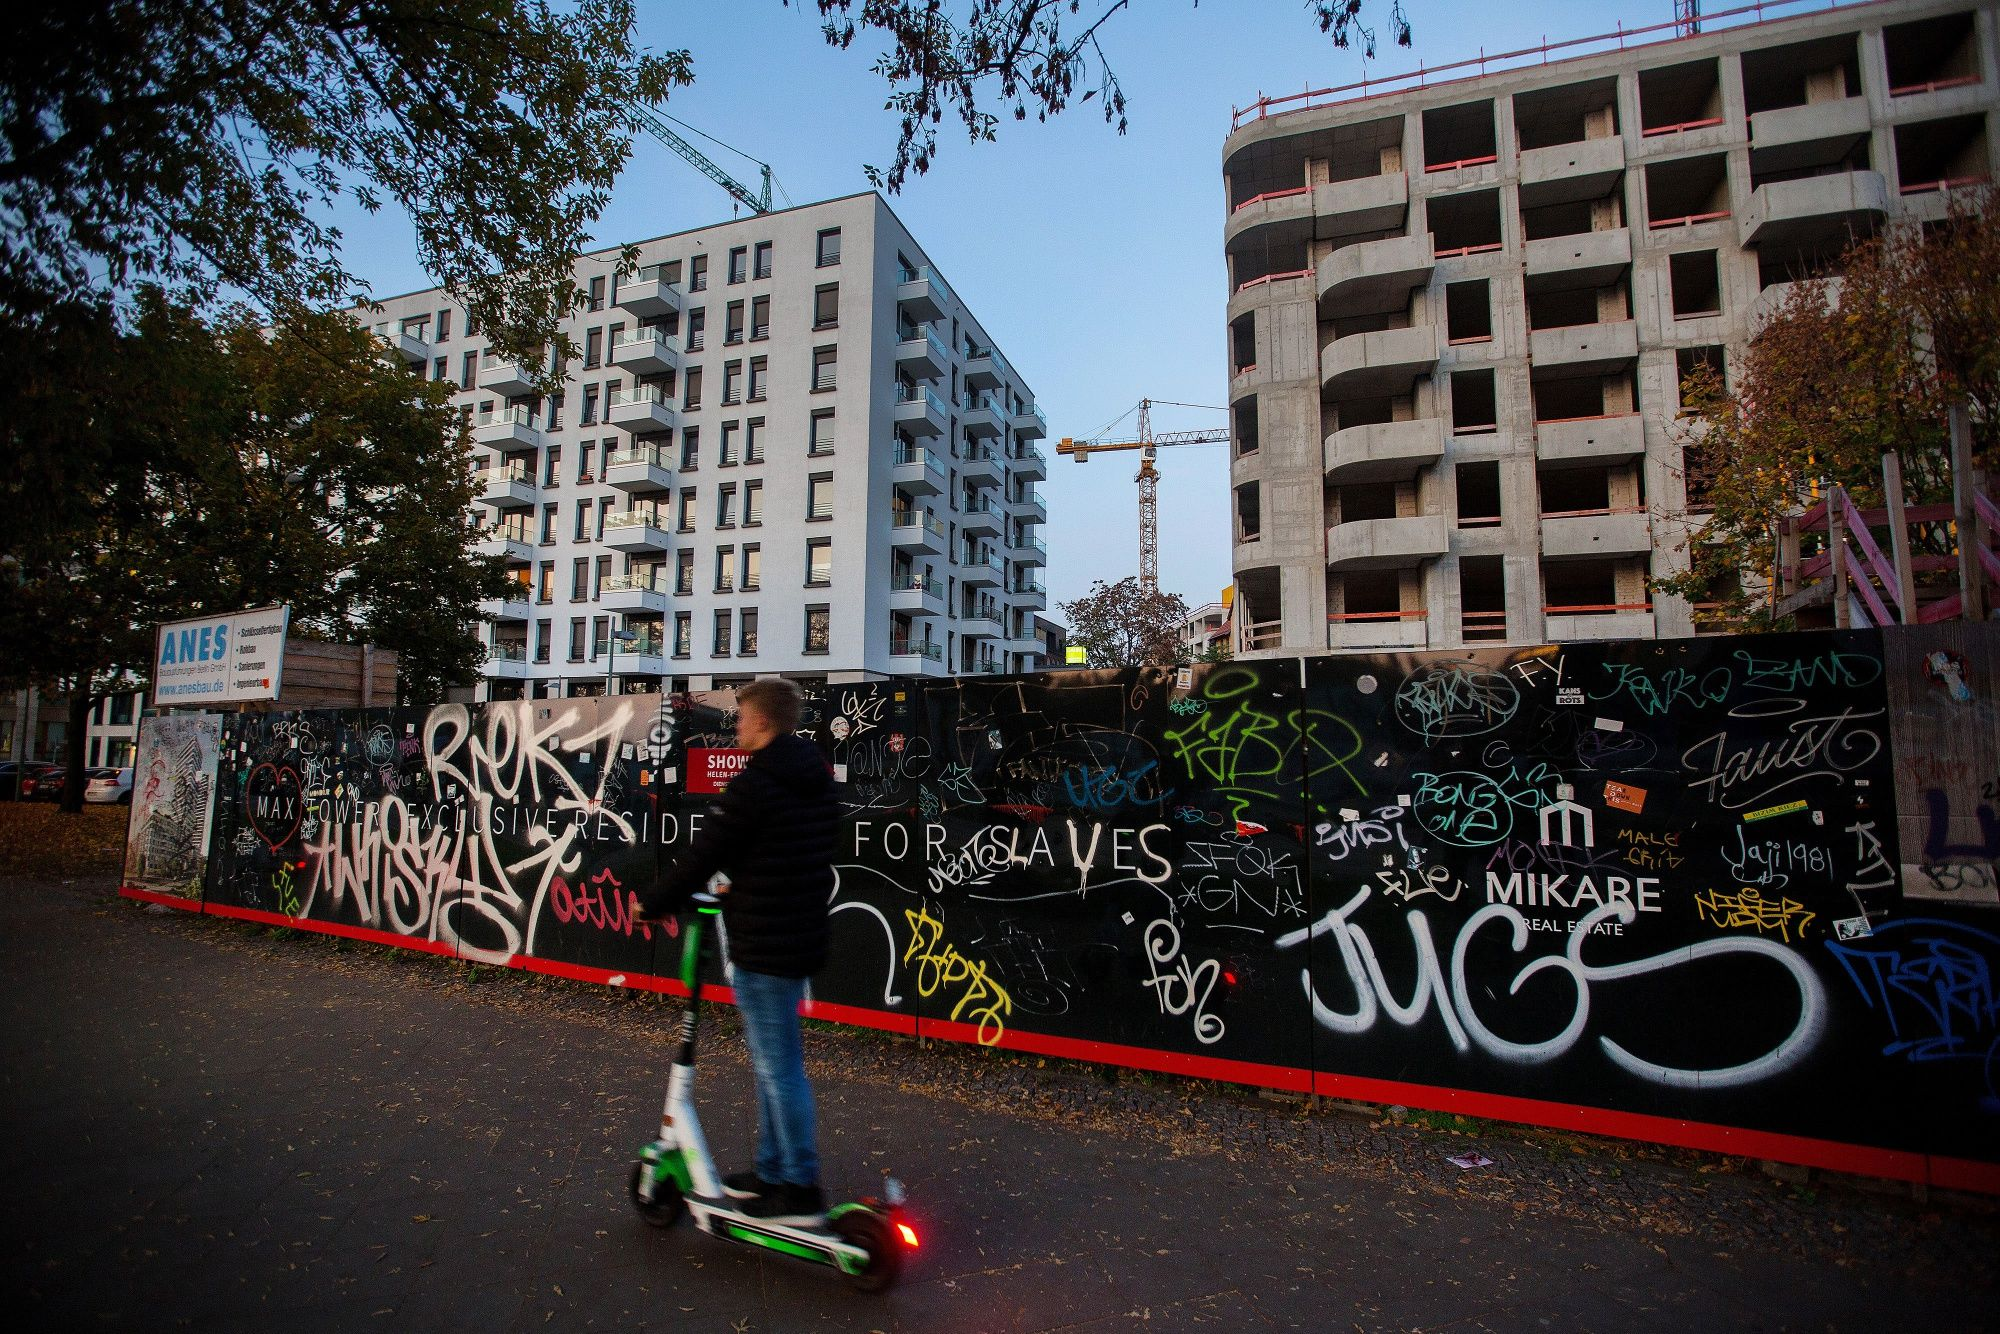 Berlin Adopts Five-Year Freeze to Rein In Soaring Rents